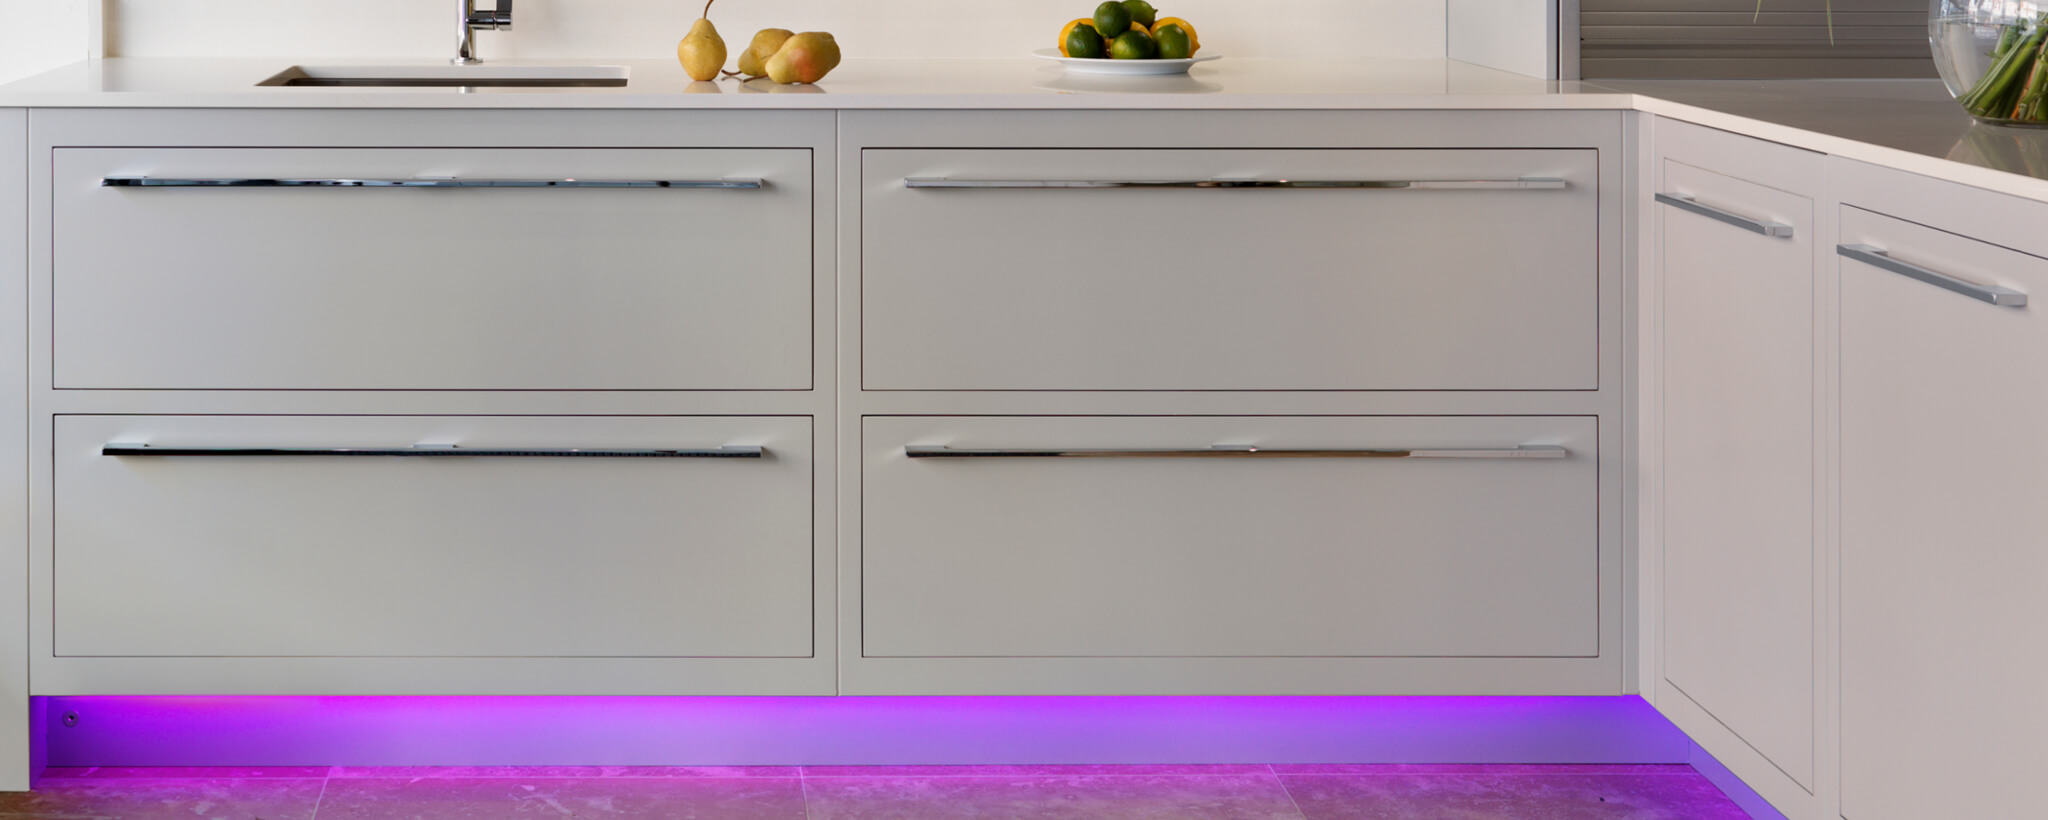 Using Bright Colour In The Kitchen